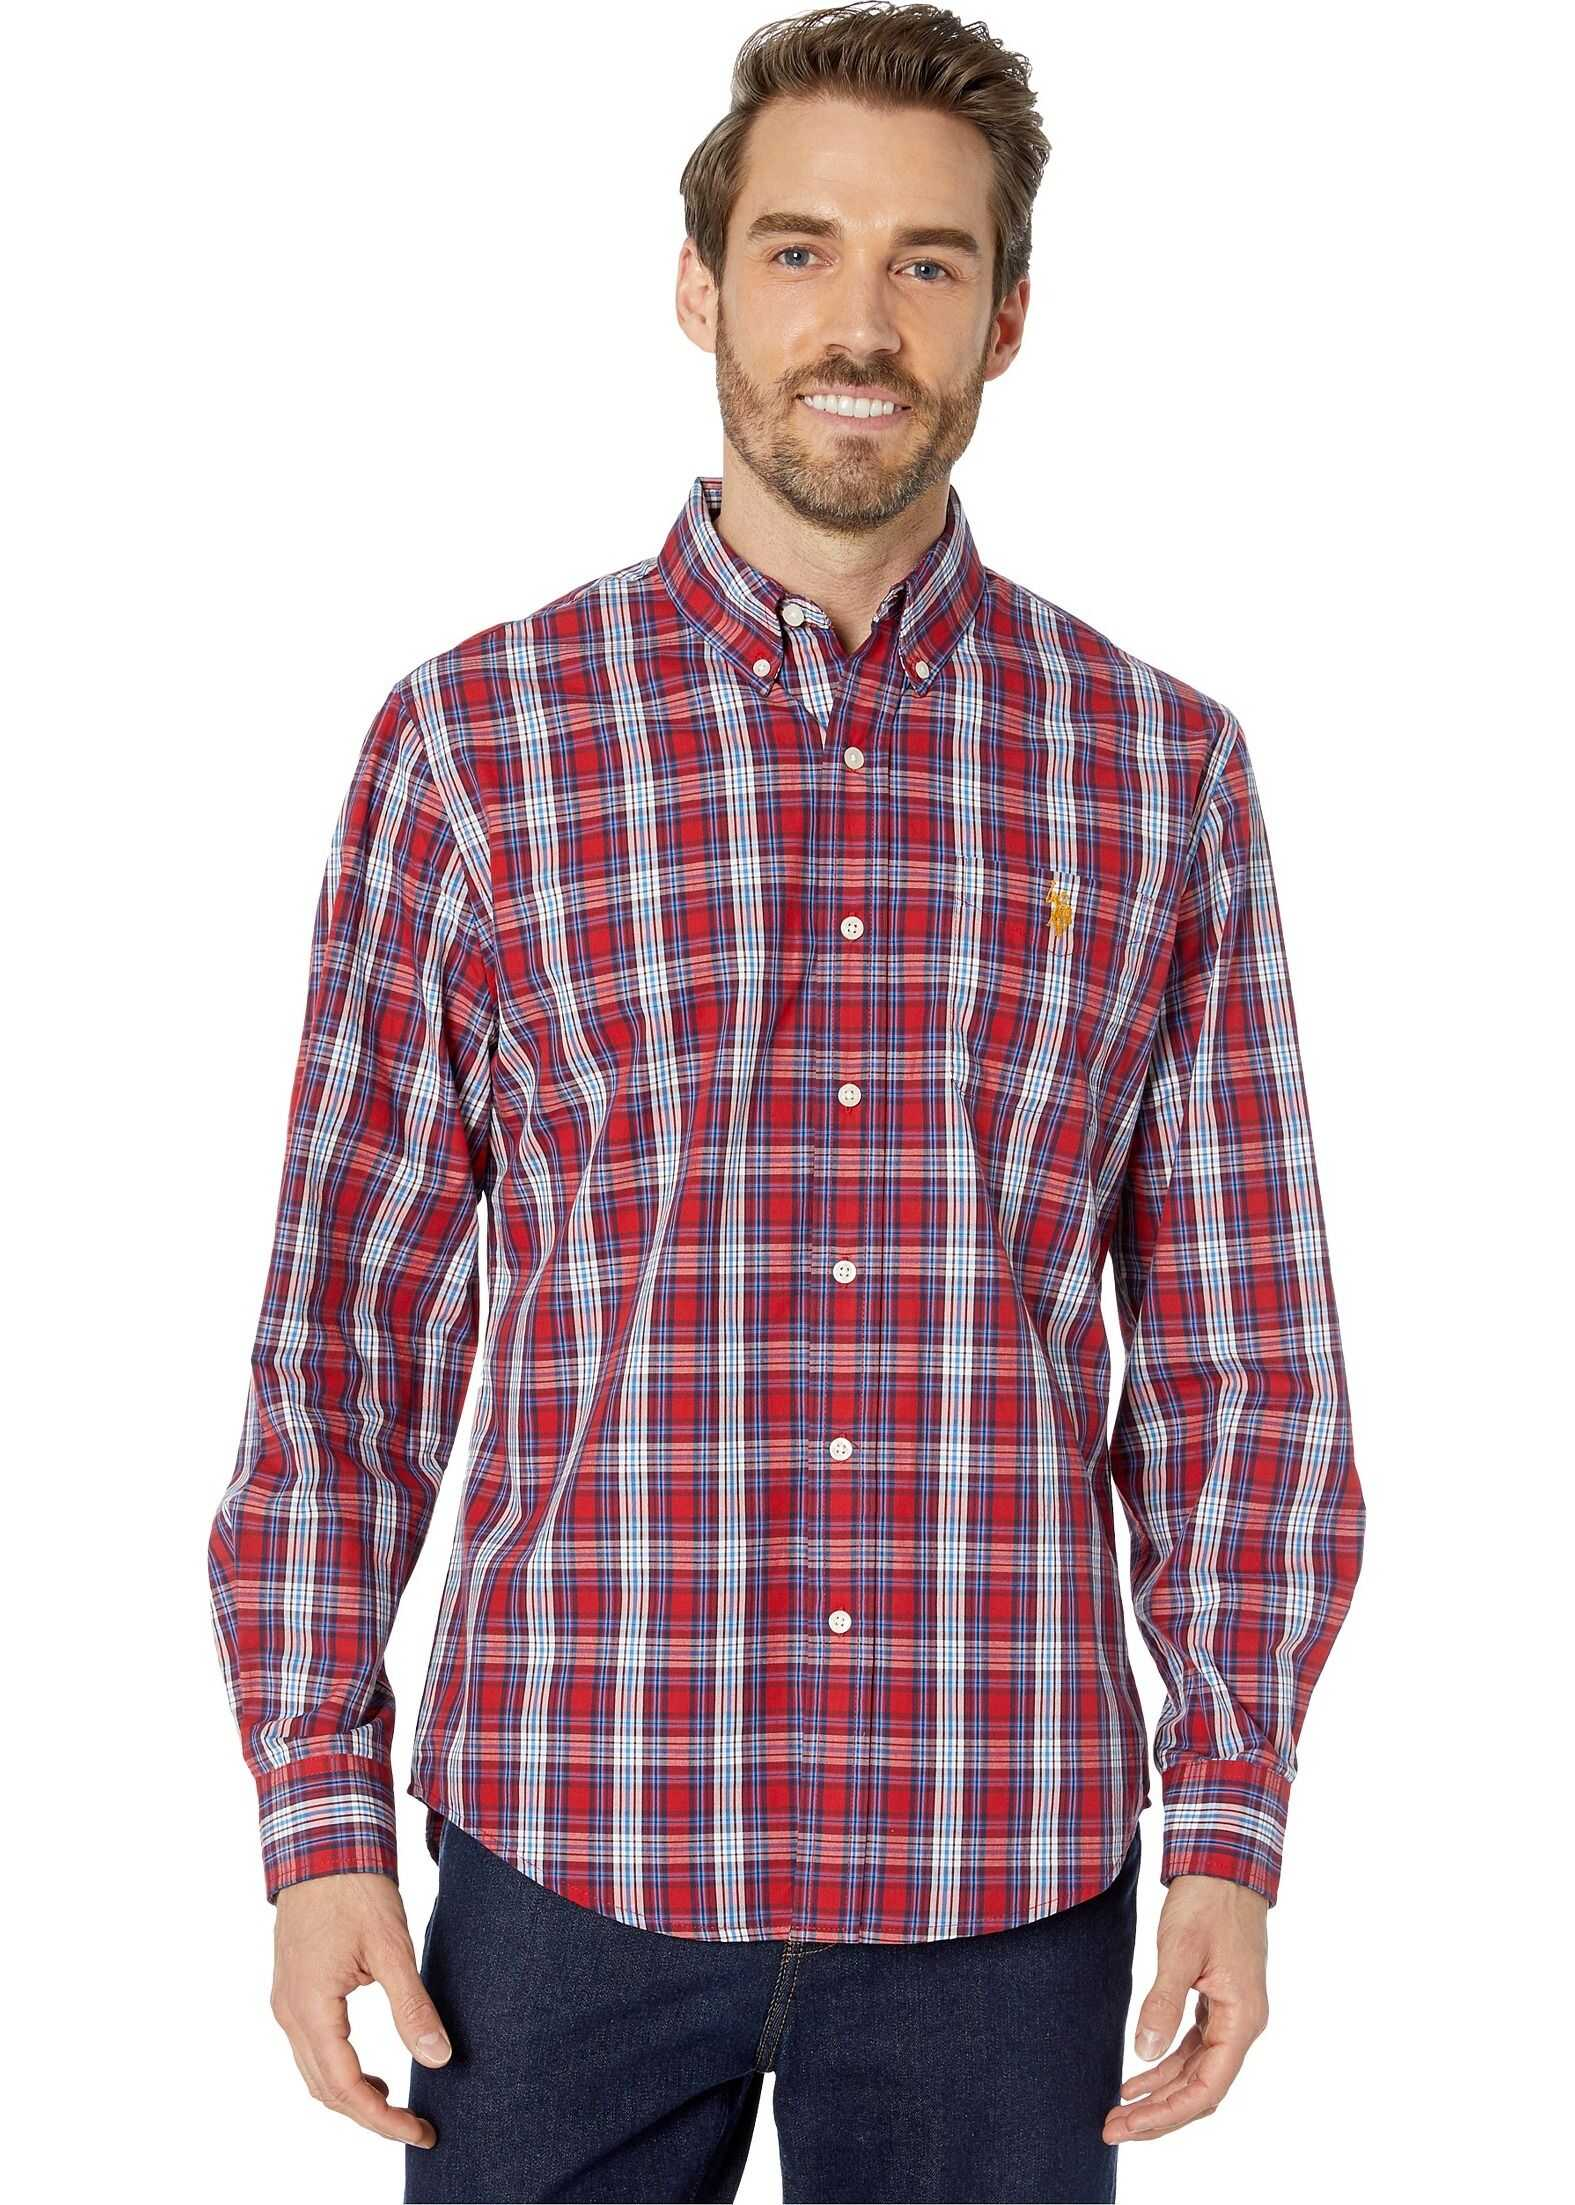 U.S. POLO ASSN. Long Sleeve Classic Fit Plaid Woven Barn Red